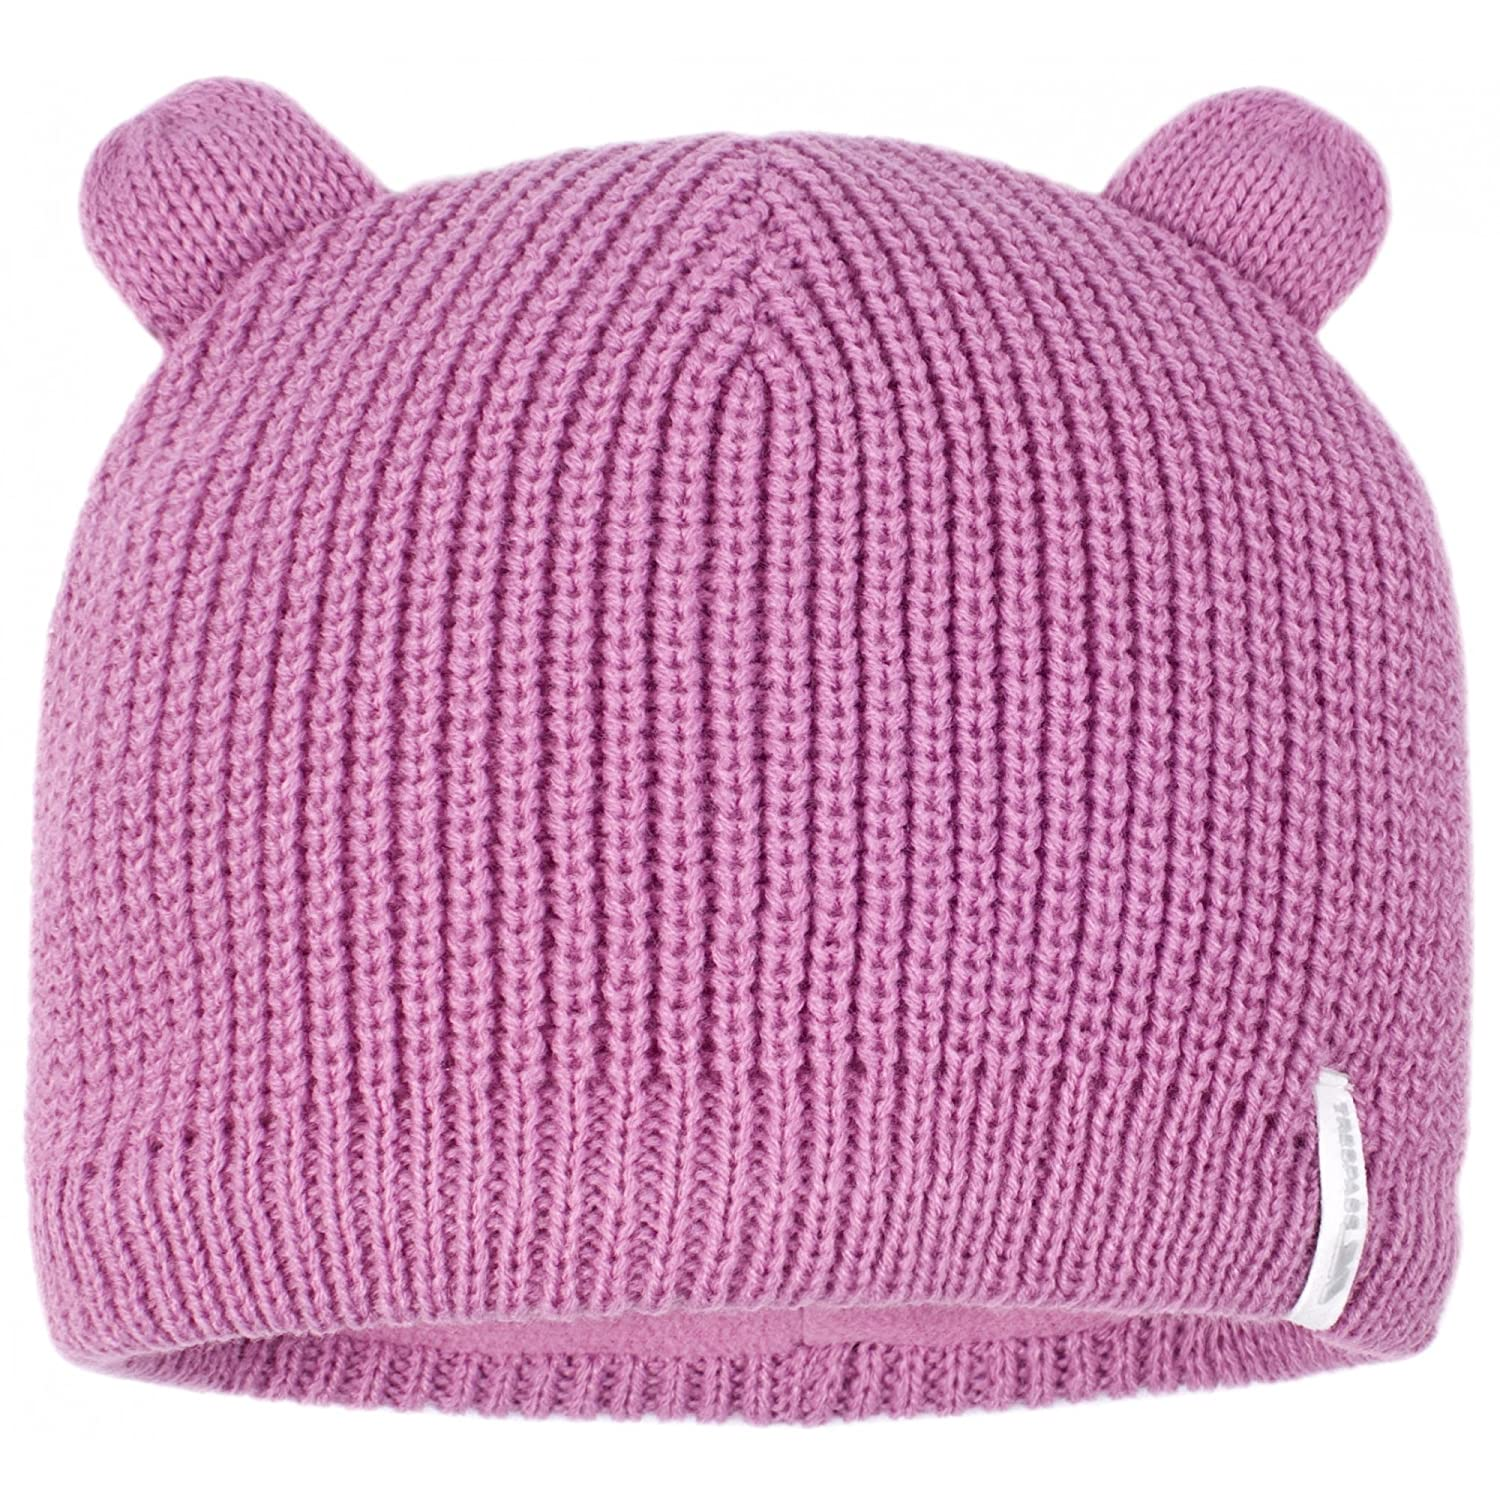 10de7a43 Amazon.com: Trespass Childrens/Kids Toot Knitted Winter Beanie Hat (5/7  Years) (Blossom): Clothing